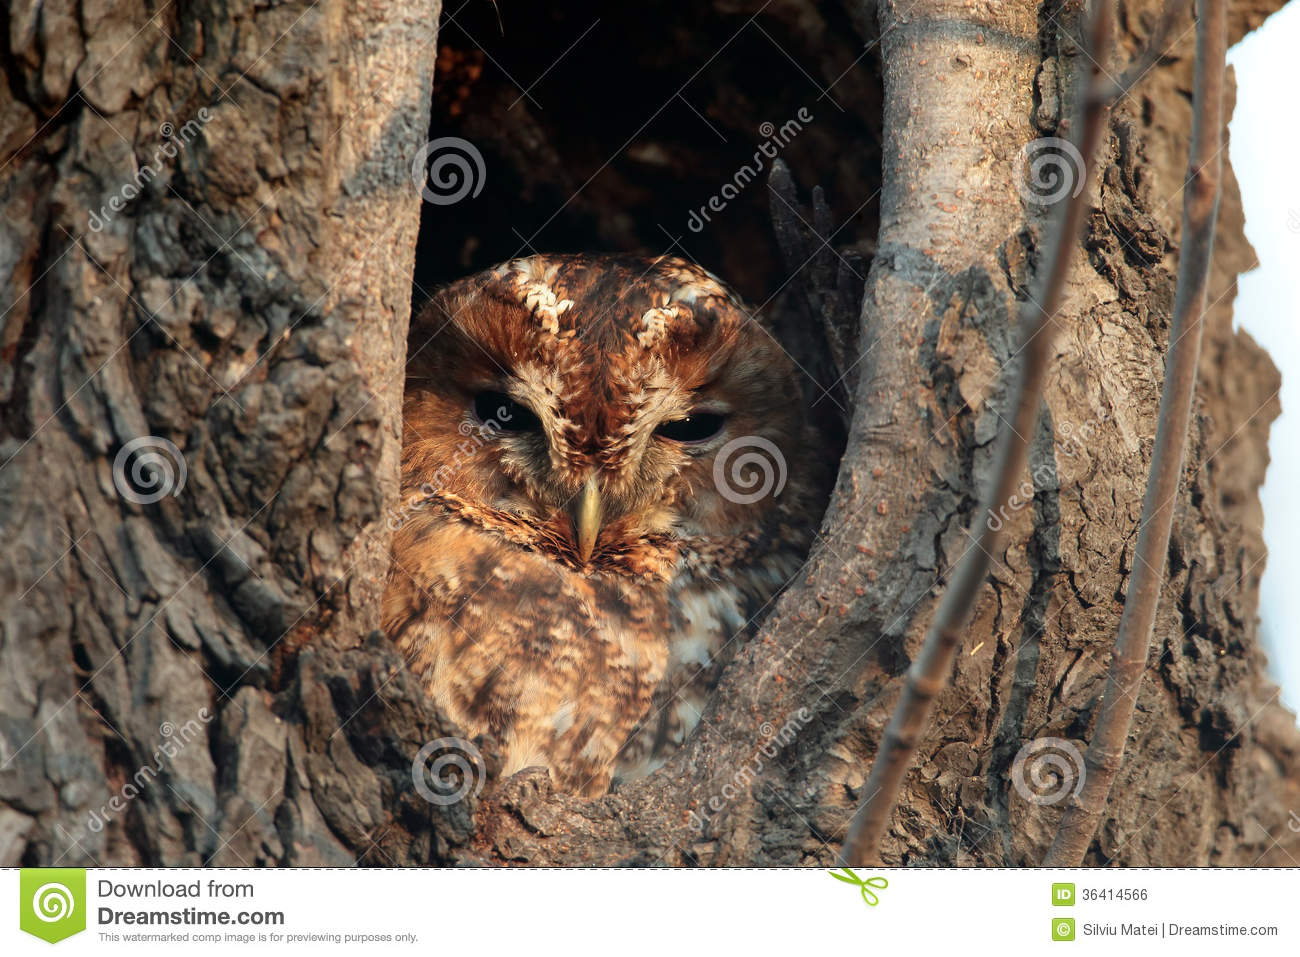 Tawny Owl, Strix aluco,sits in a hole in an old tree